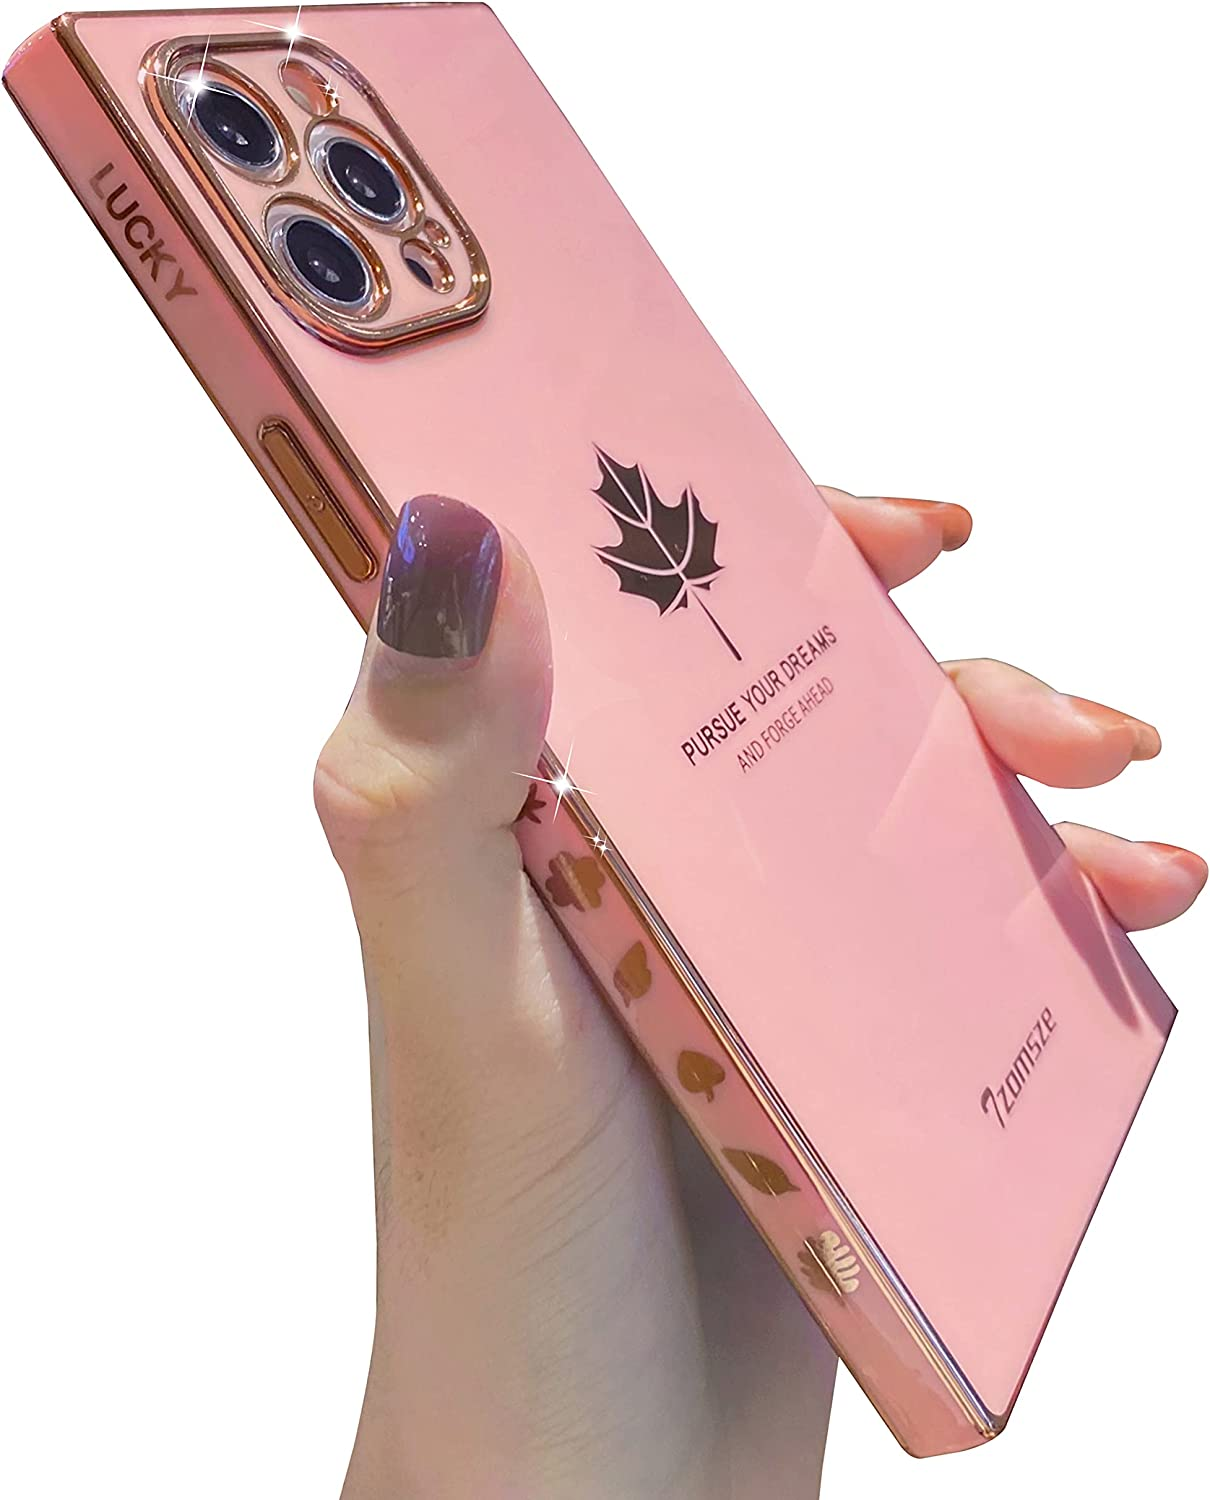 Square Case for iPhone 12 Pro Max,Tzomsze Cute Full Camera Lens Protection & Electroplate Reinforced Corners Shockproof Edge Bumper iPhone 12 Pro Max Case [6.7 inches] -Maple Leaf Pink